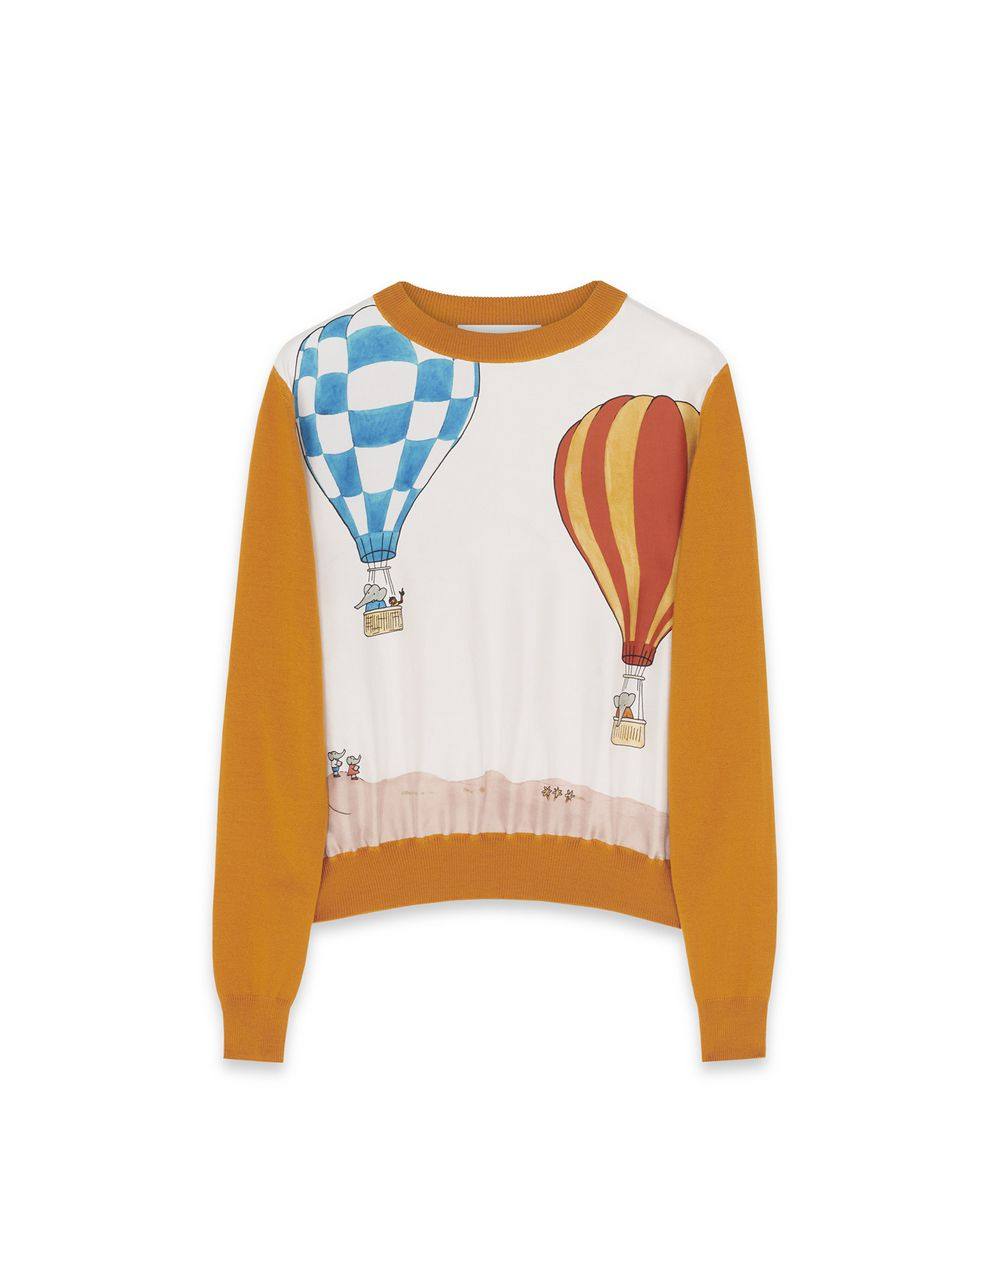 BABAR PRINTED SWEATER - Lanvin